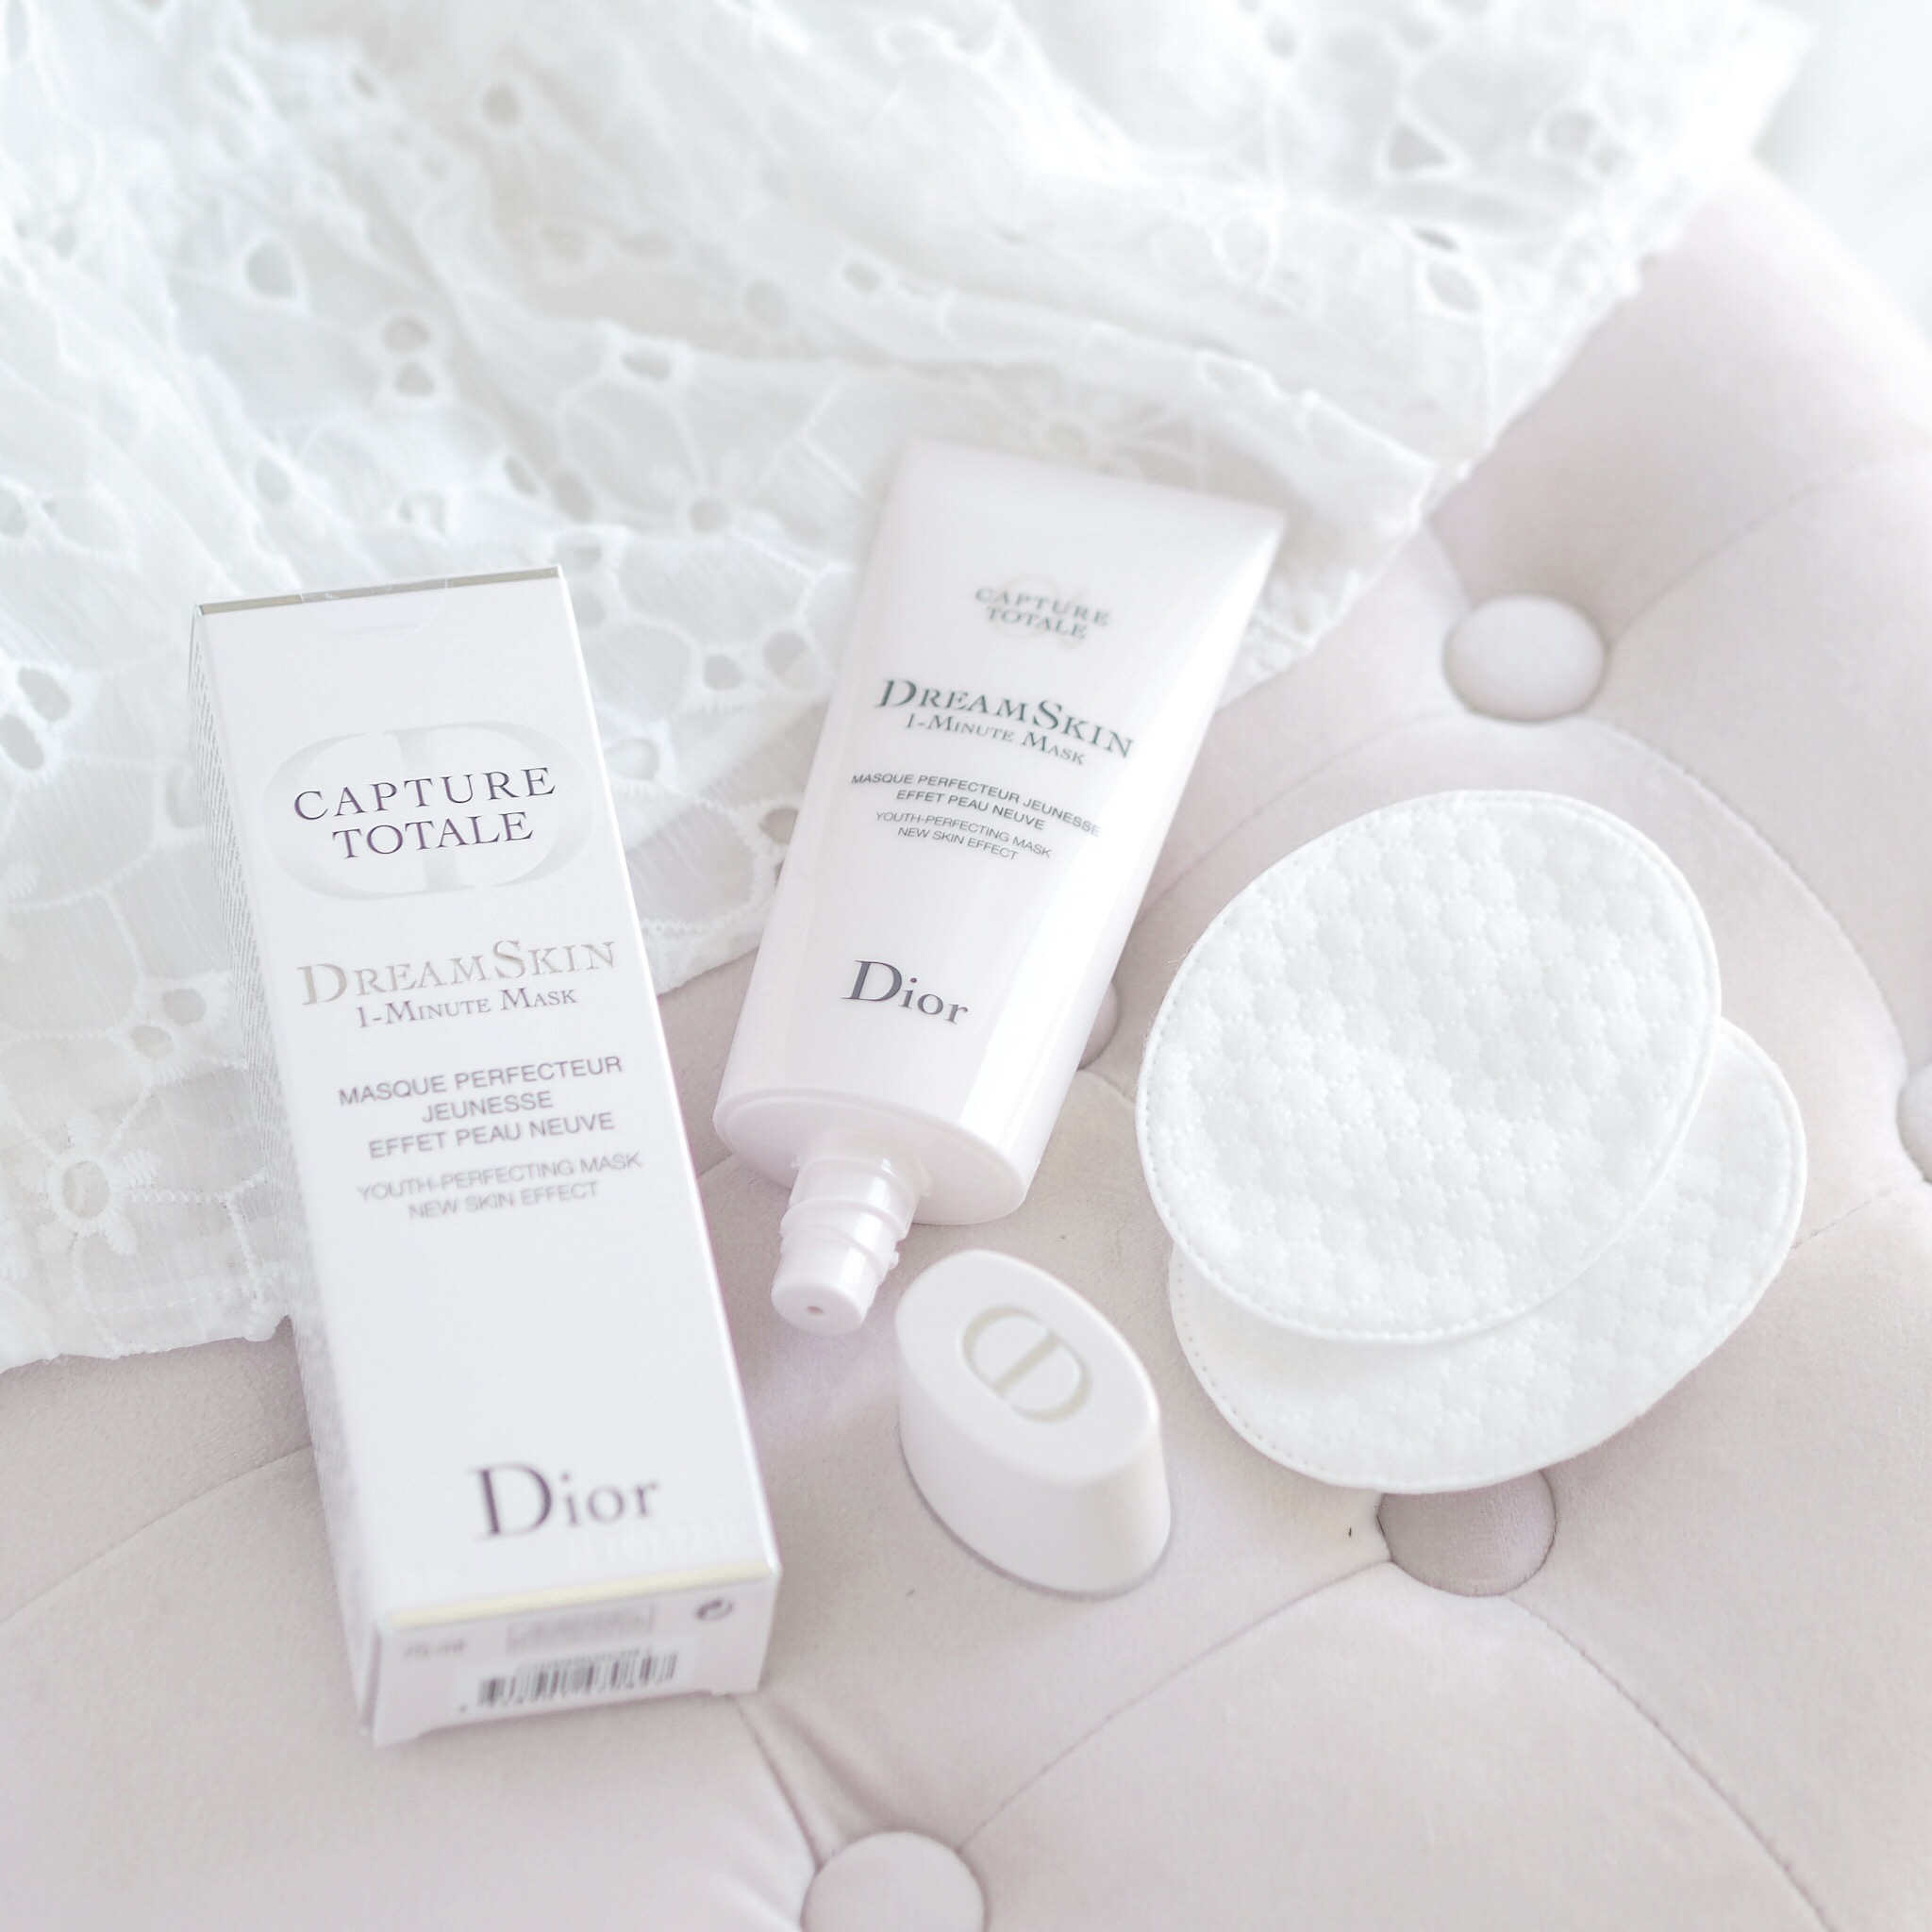 Dreamy Skincare For Angel Skin, Dior Dreamskin Mask | Love Catherine